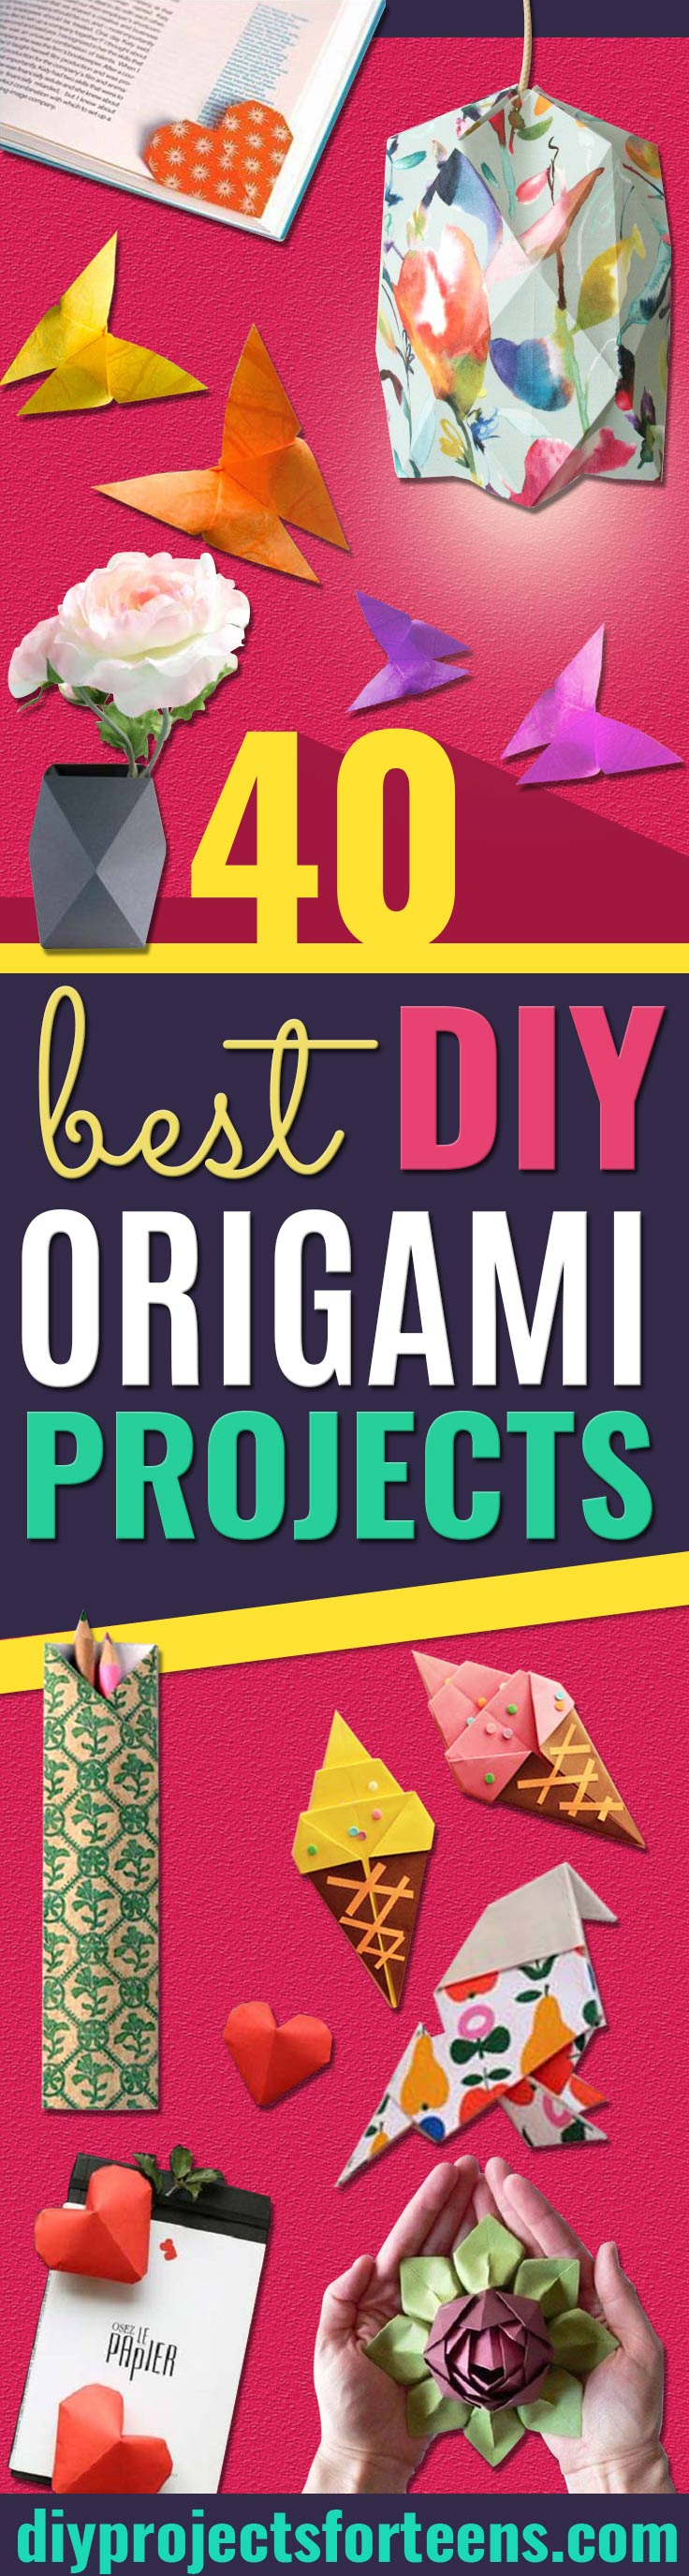 Best Origami Tutorials - Easy DIY Origami Tutorial Projects for With Instructions for Flowers, Dog, Gift Box, Star, Owl, Buttlerfly, Heart and Bookmark, Animals - Fun Paper Crafts for Teens, Kids and Adults http://diyprojectsforteens.com/best-origami-tutorials